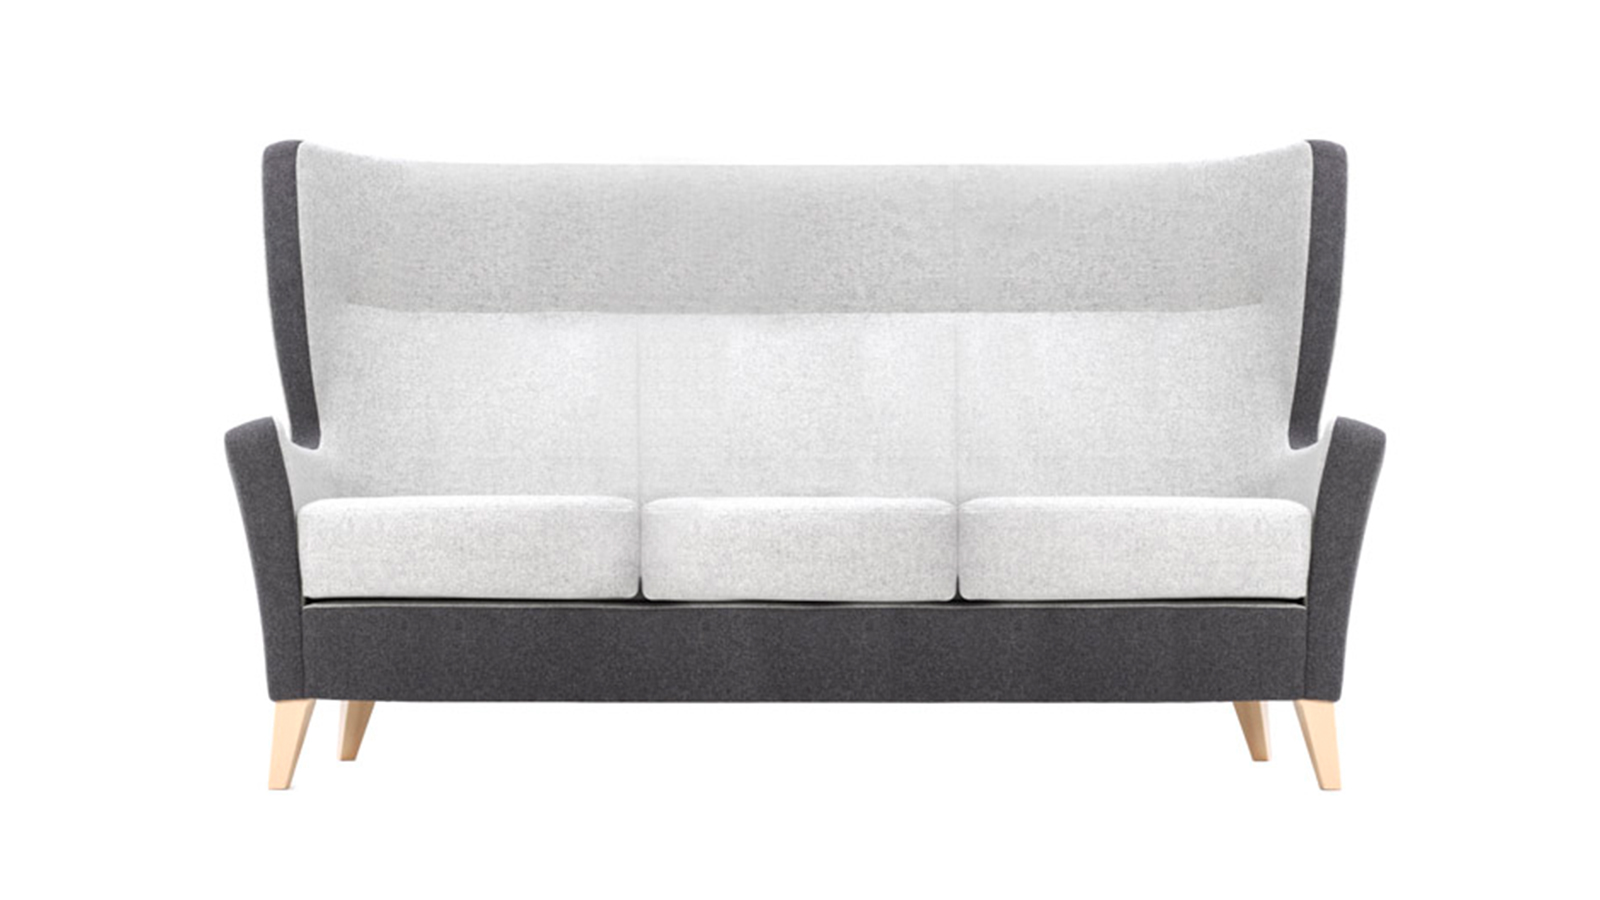 This is the right way to show a sofa product – singly, with a clear background. There is no prop-styling which detracts, or distracts, from the product and no background colour or detail which means the product can be rapidly assessed by a professional specifier.